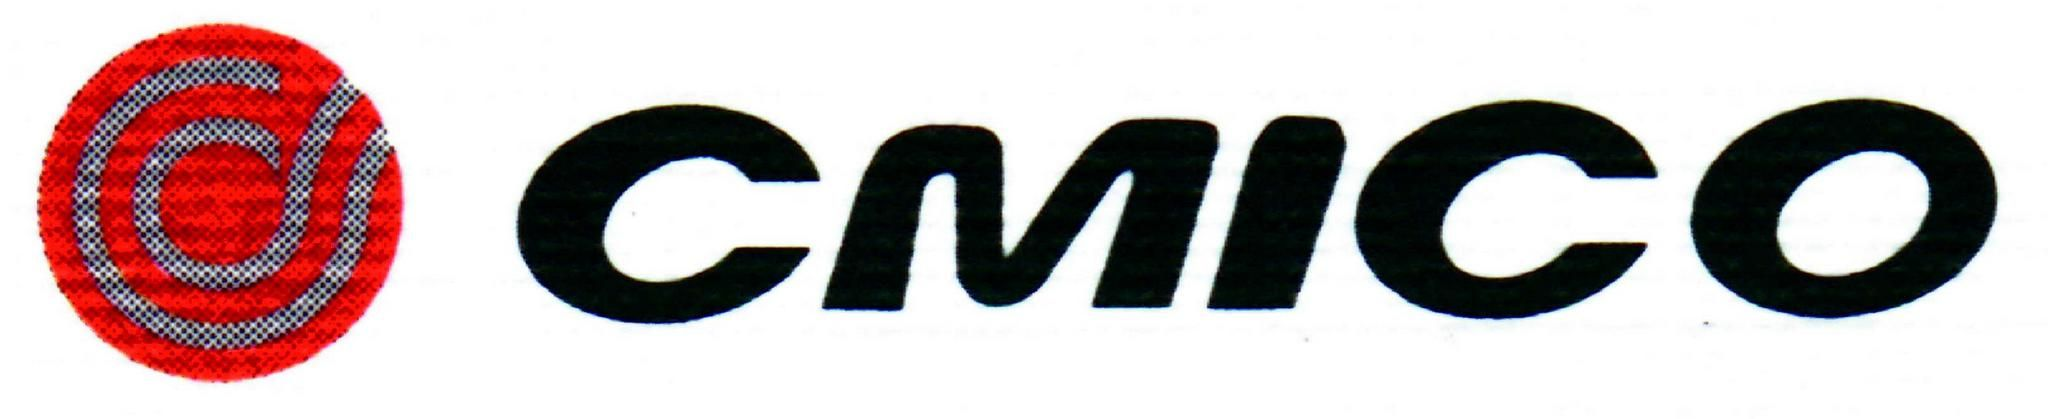 Climax Machine Industry Co. Ltd.